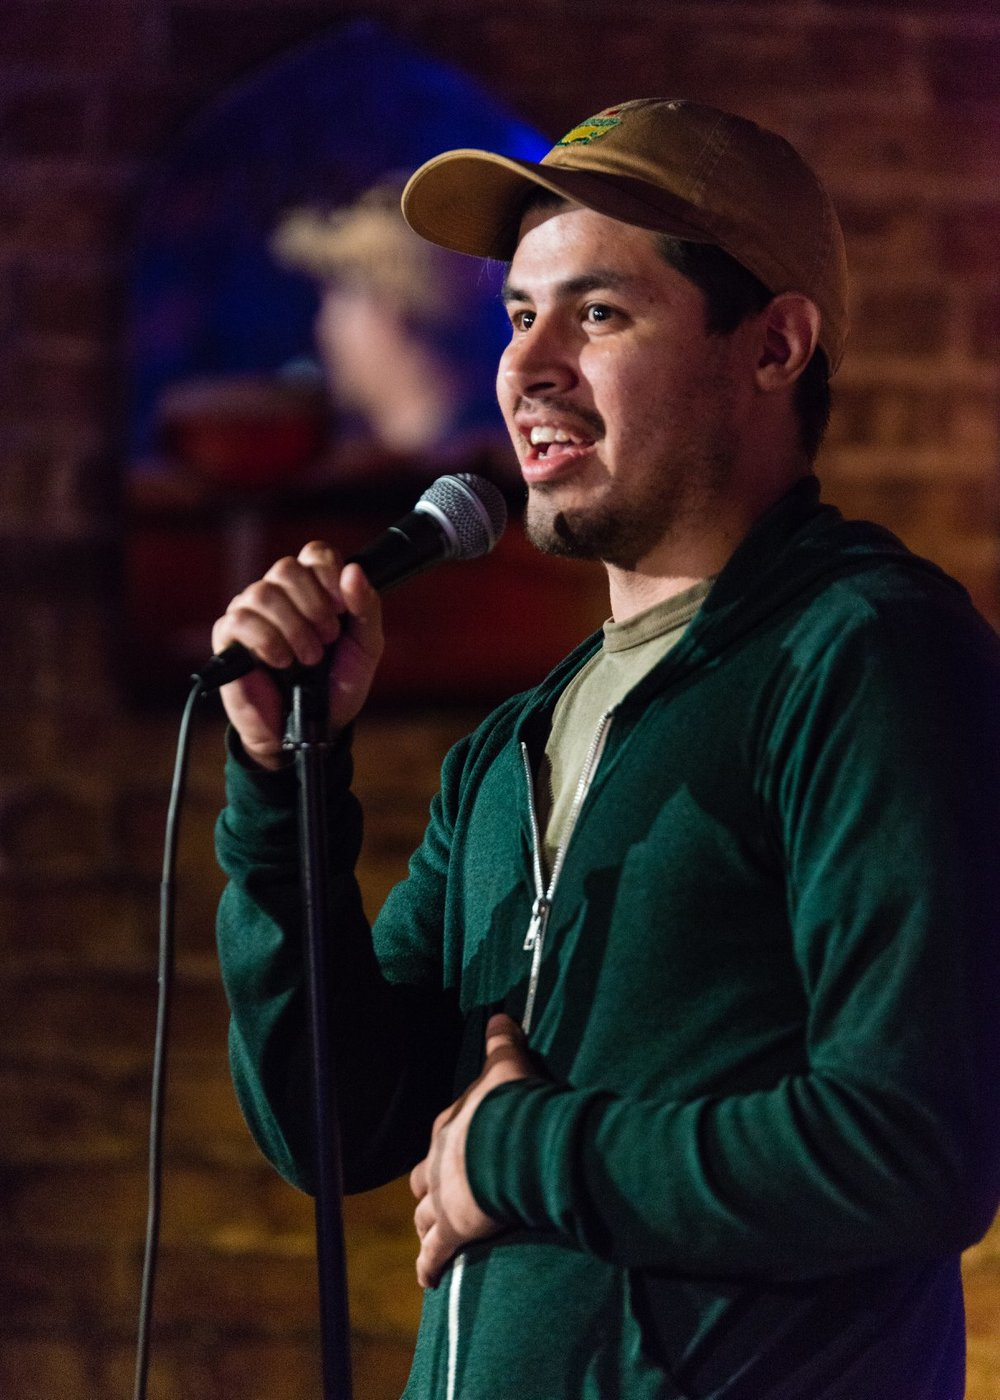 Christian Reyes stand-up.